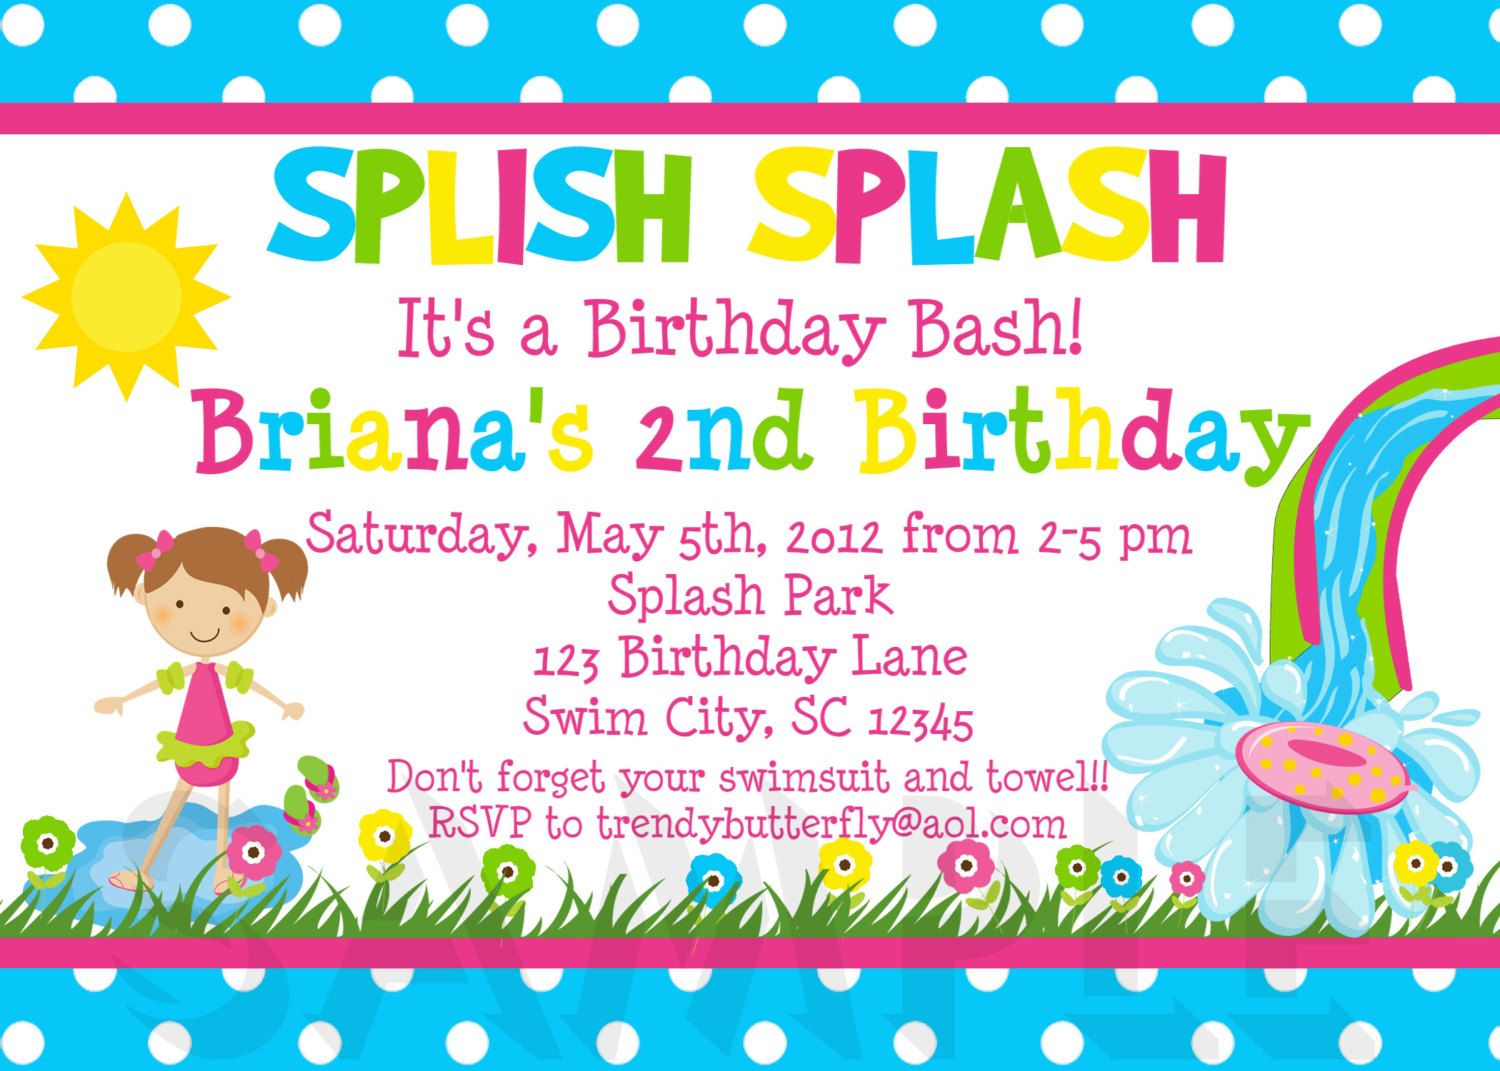 Pool party birthday invitation waterslide birthday invitation pool party birthday invitation waterslide birthday invitation printable girls or boys 1500 via etsy filmwisefo Image collections